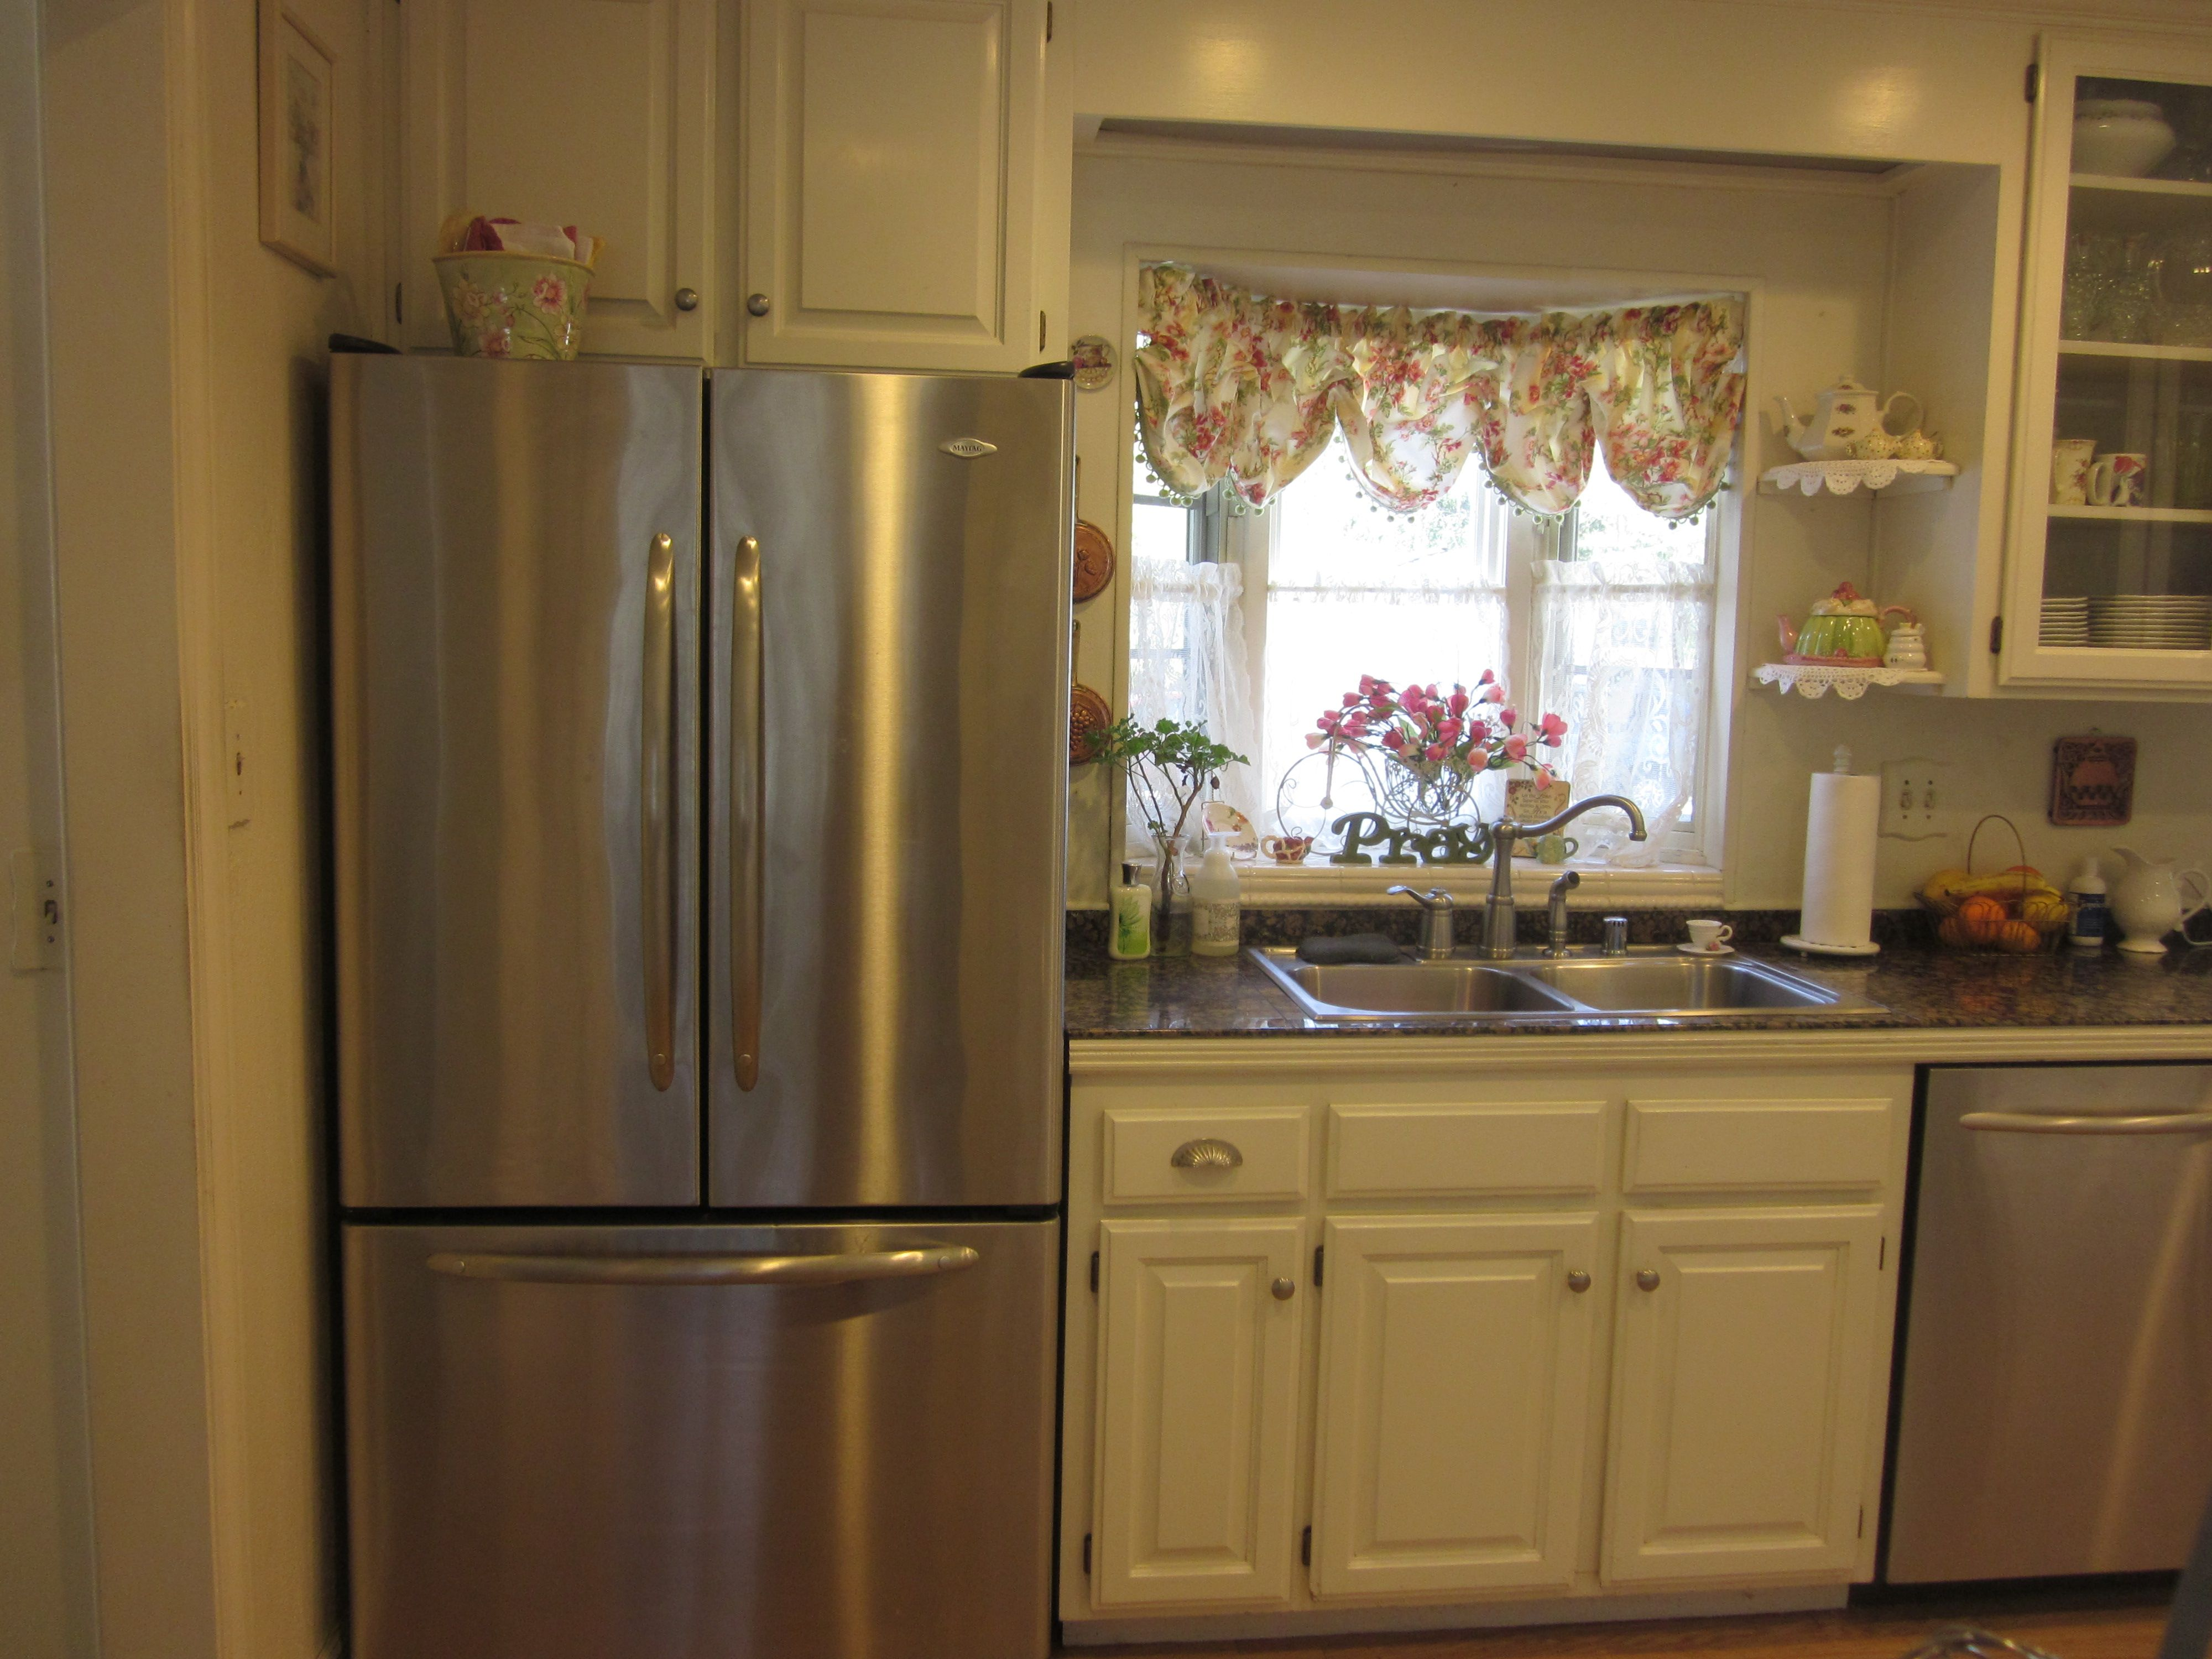 A Maytag french door refrigerator in stainless steel is against the